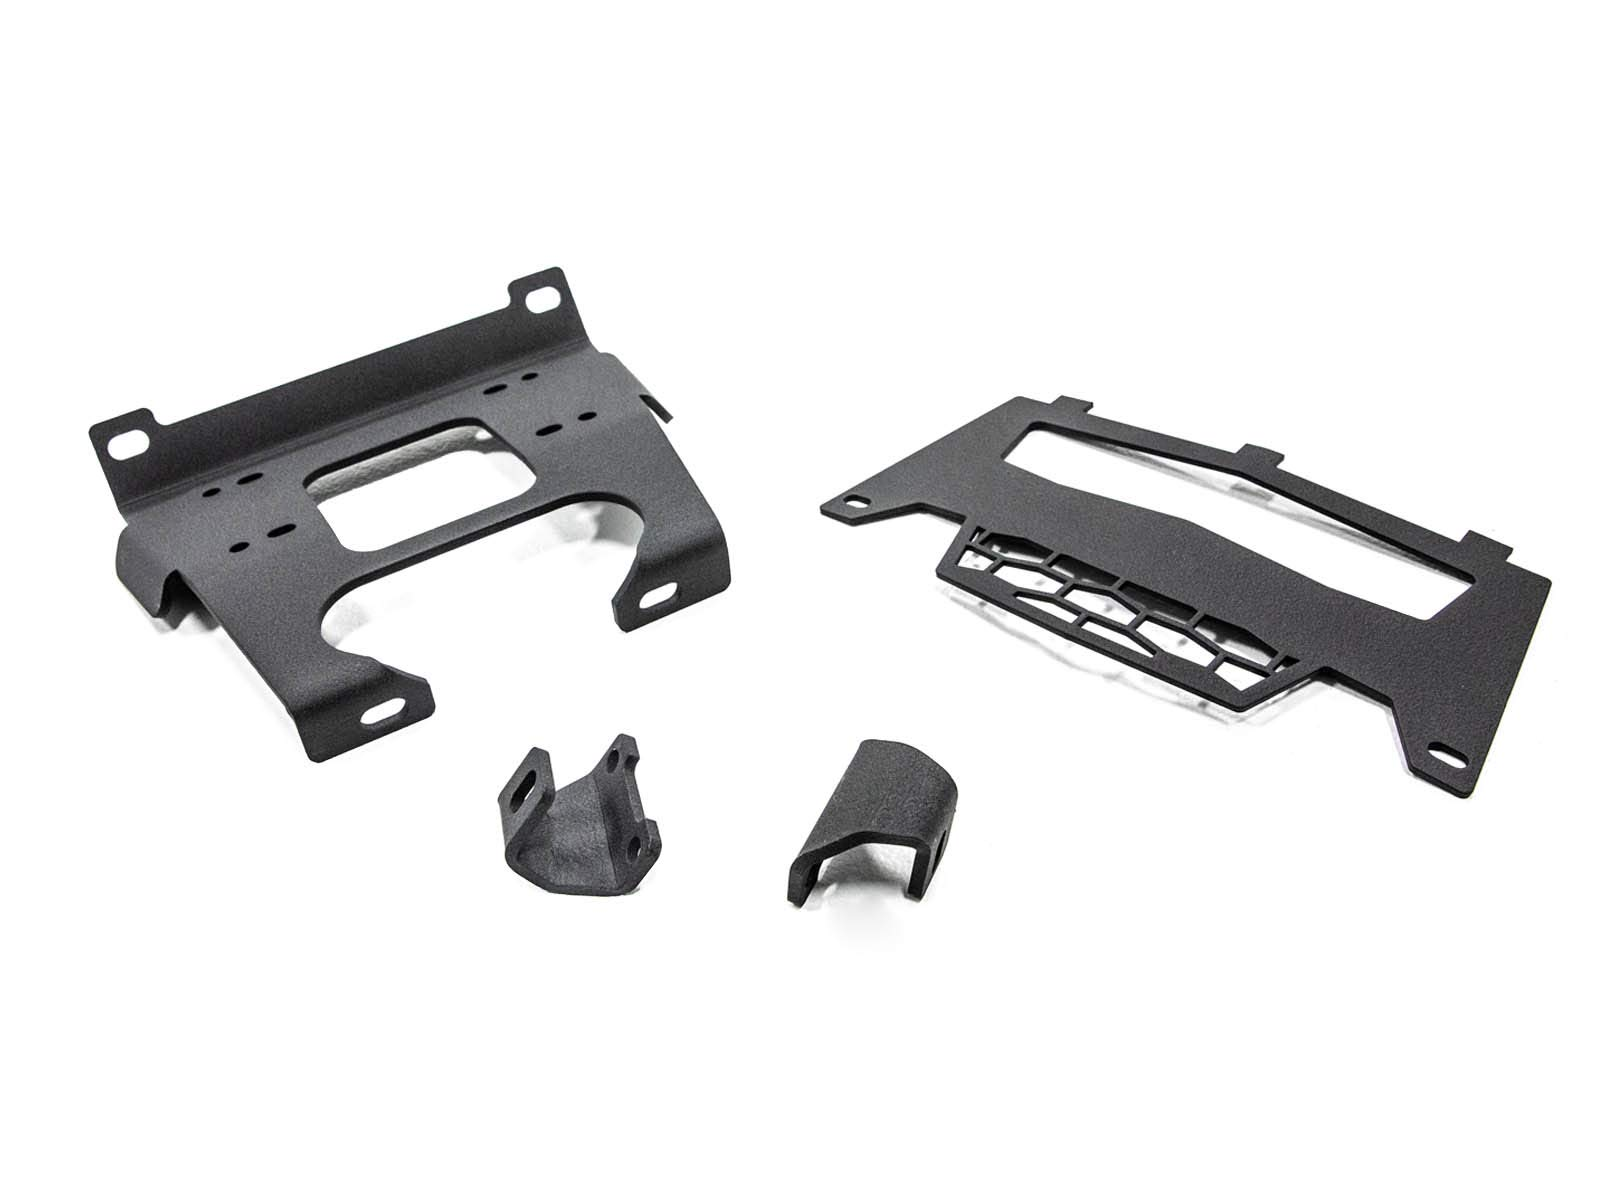 SuperATV Heavy Duty Winch Mounting Plate for Polaris RZR 900/900 S / 4 900 - (2015+) - For Machines Manufactured After 9/1/2014 by SuperATV.com